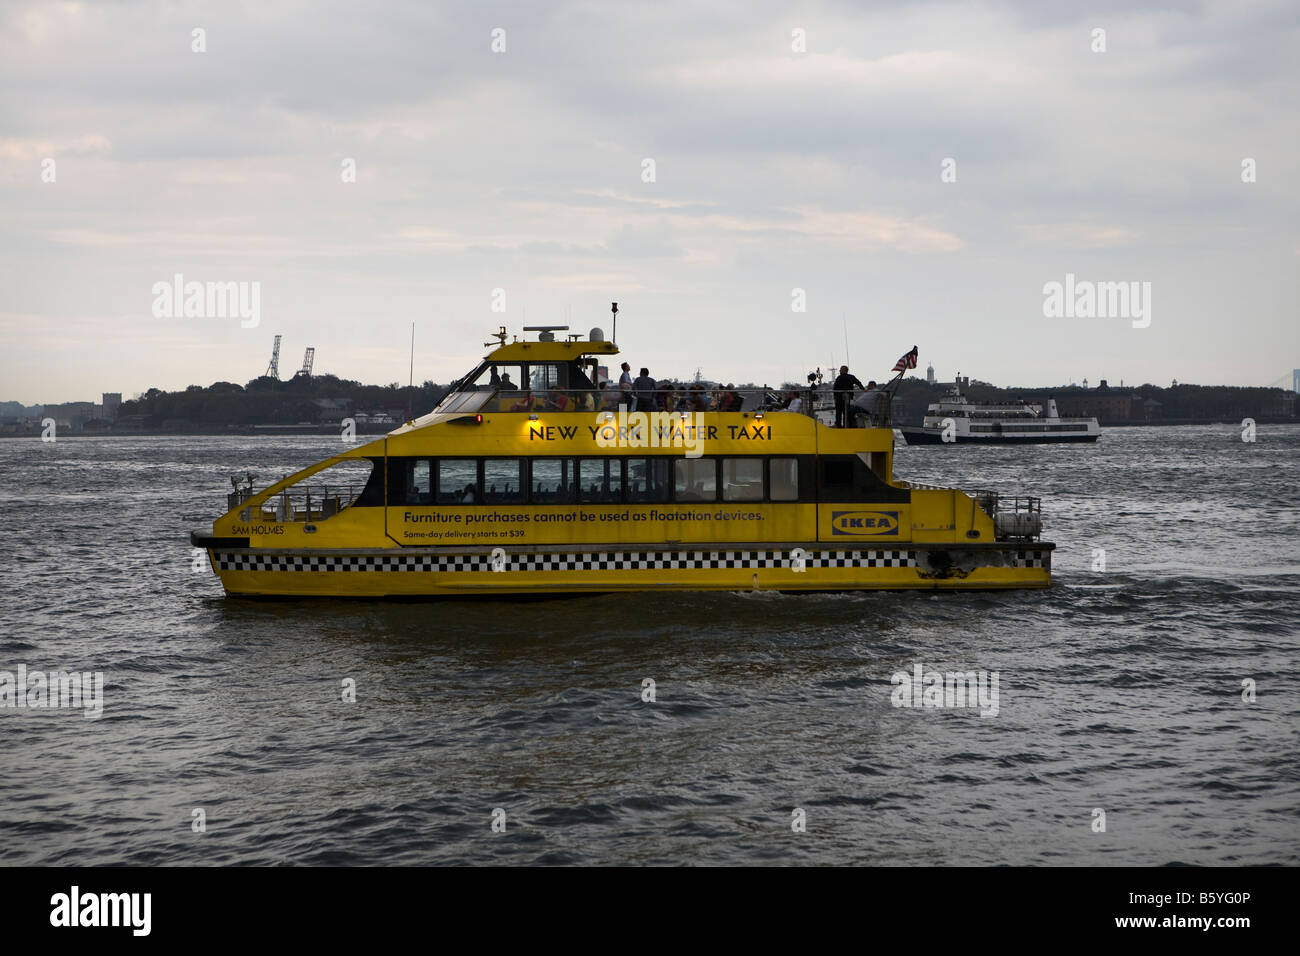 Water taxi on the Hudson River near Battery Park, Manhattan, New York City USA - Stock Image